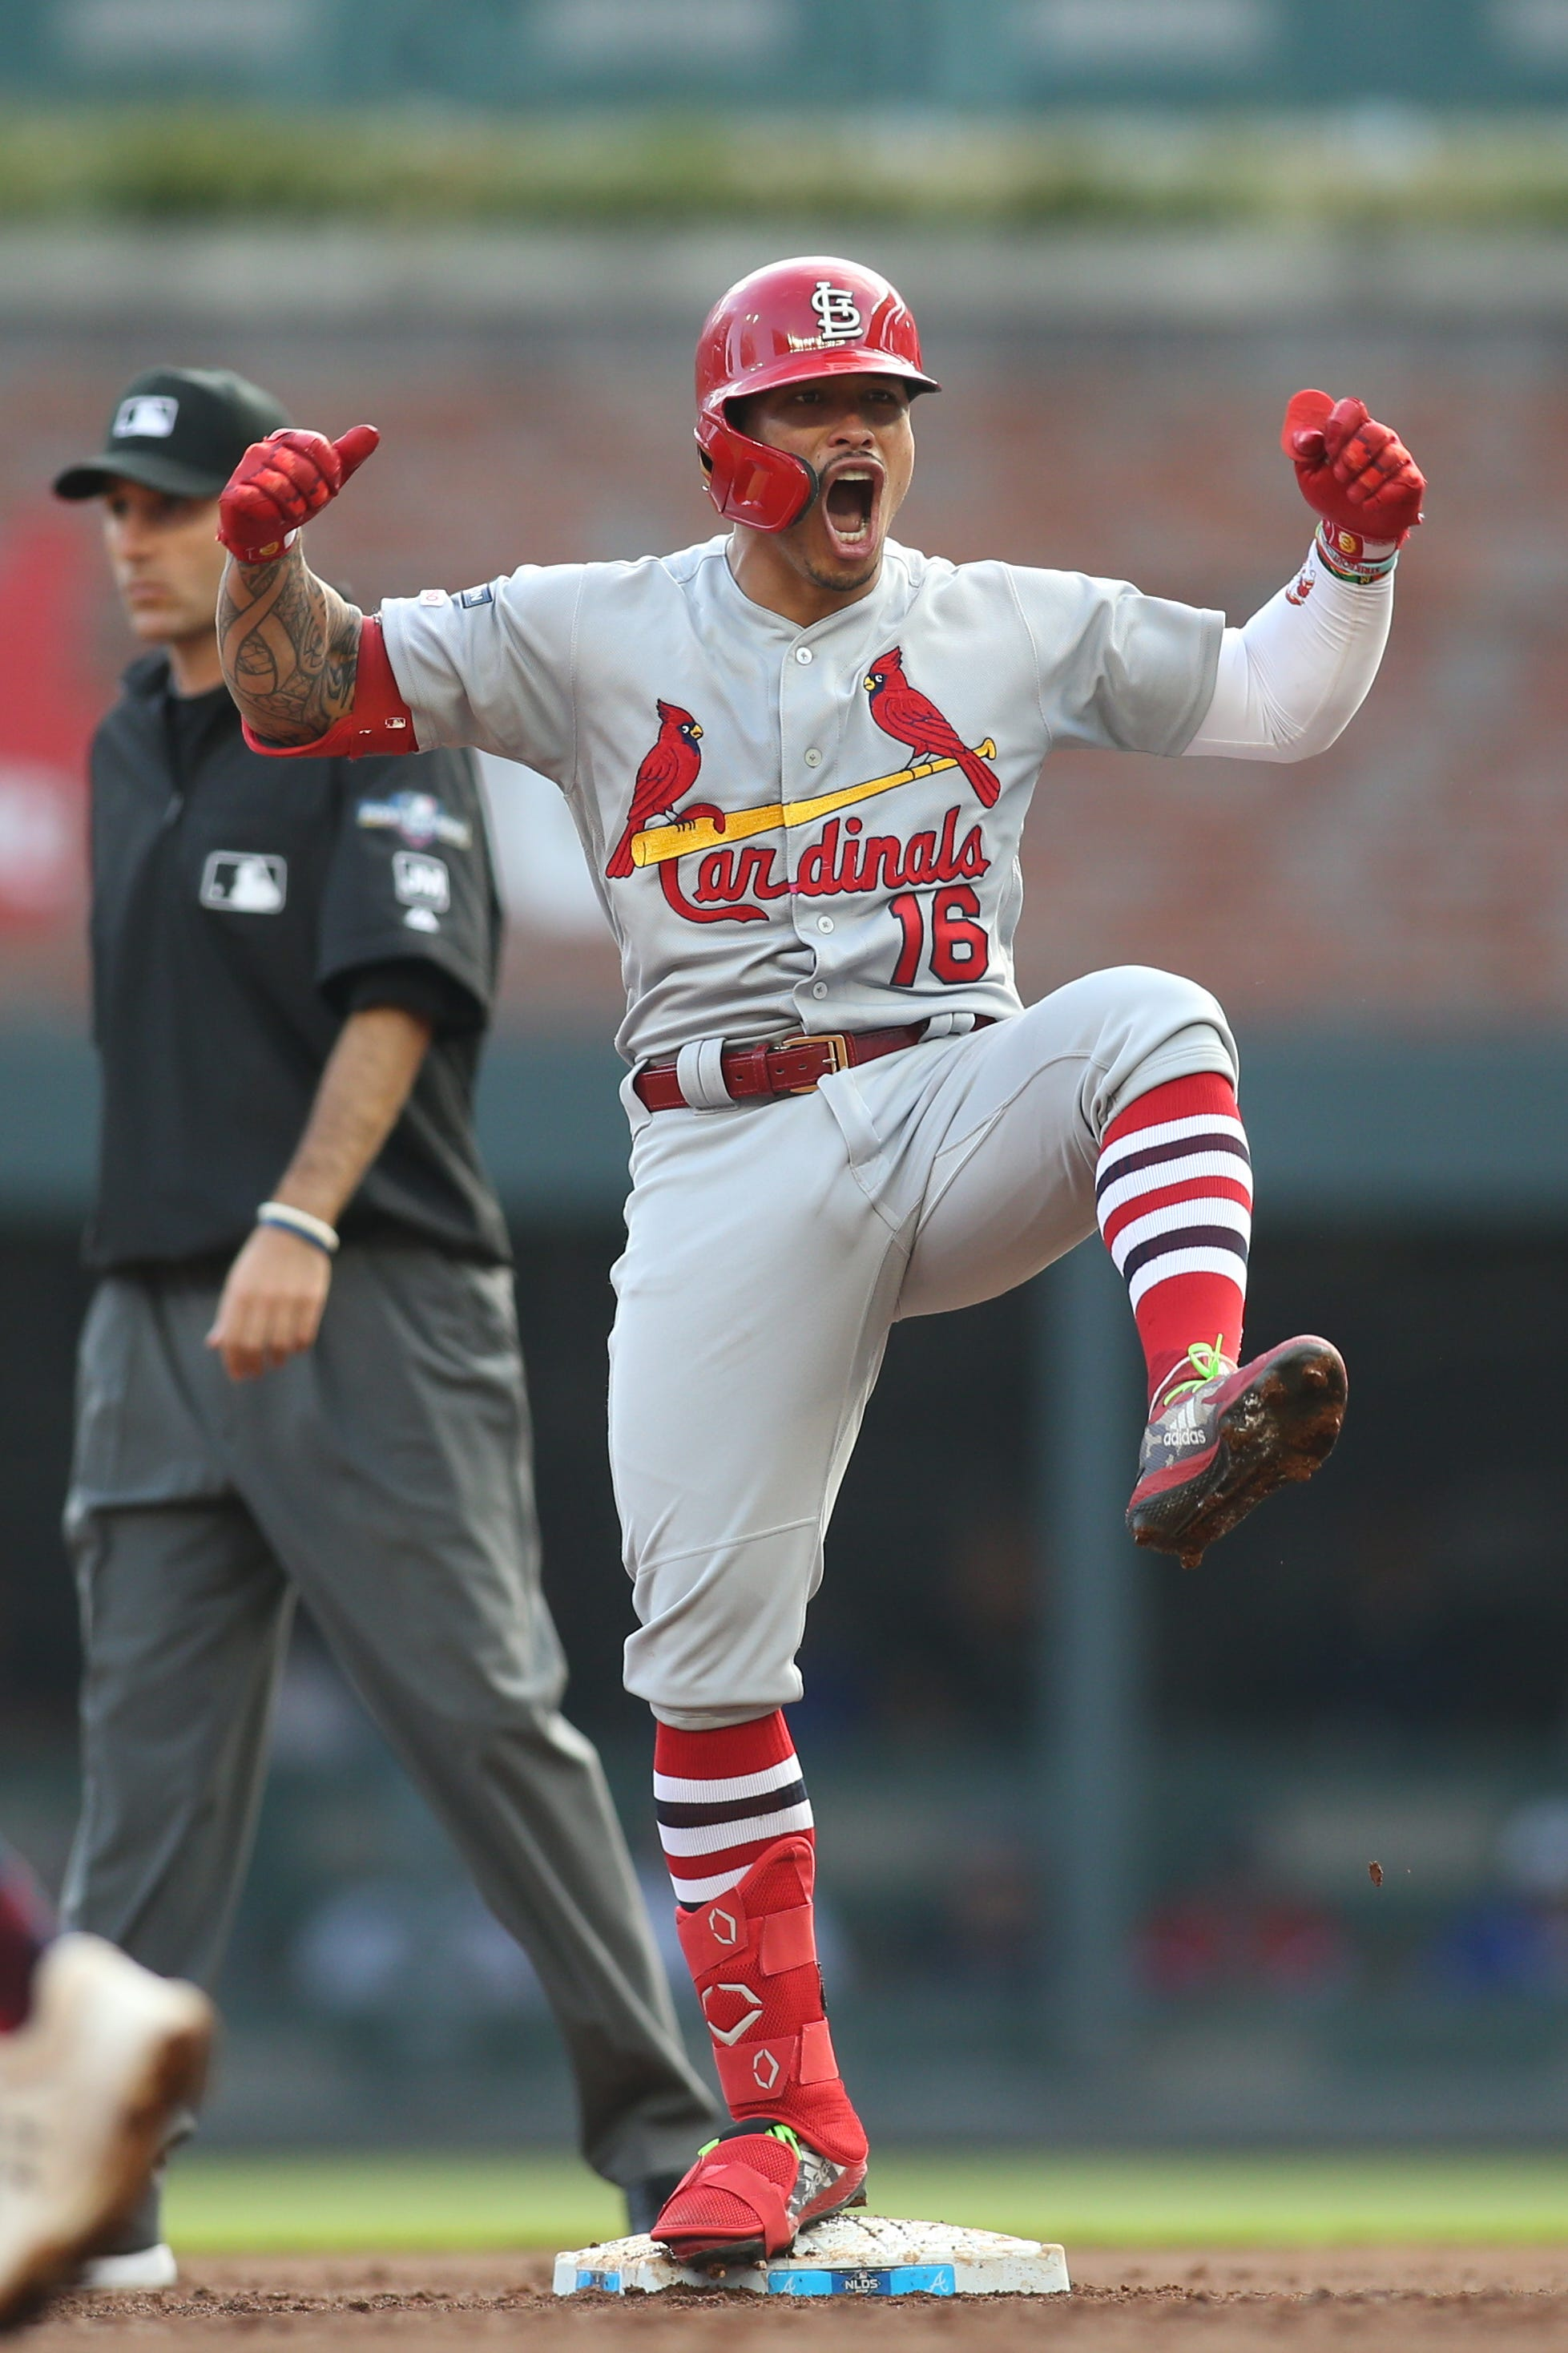 Behind historic first inning, Cardinals advance to NLCS with blowout win vs. Braves in NLDS Game 5